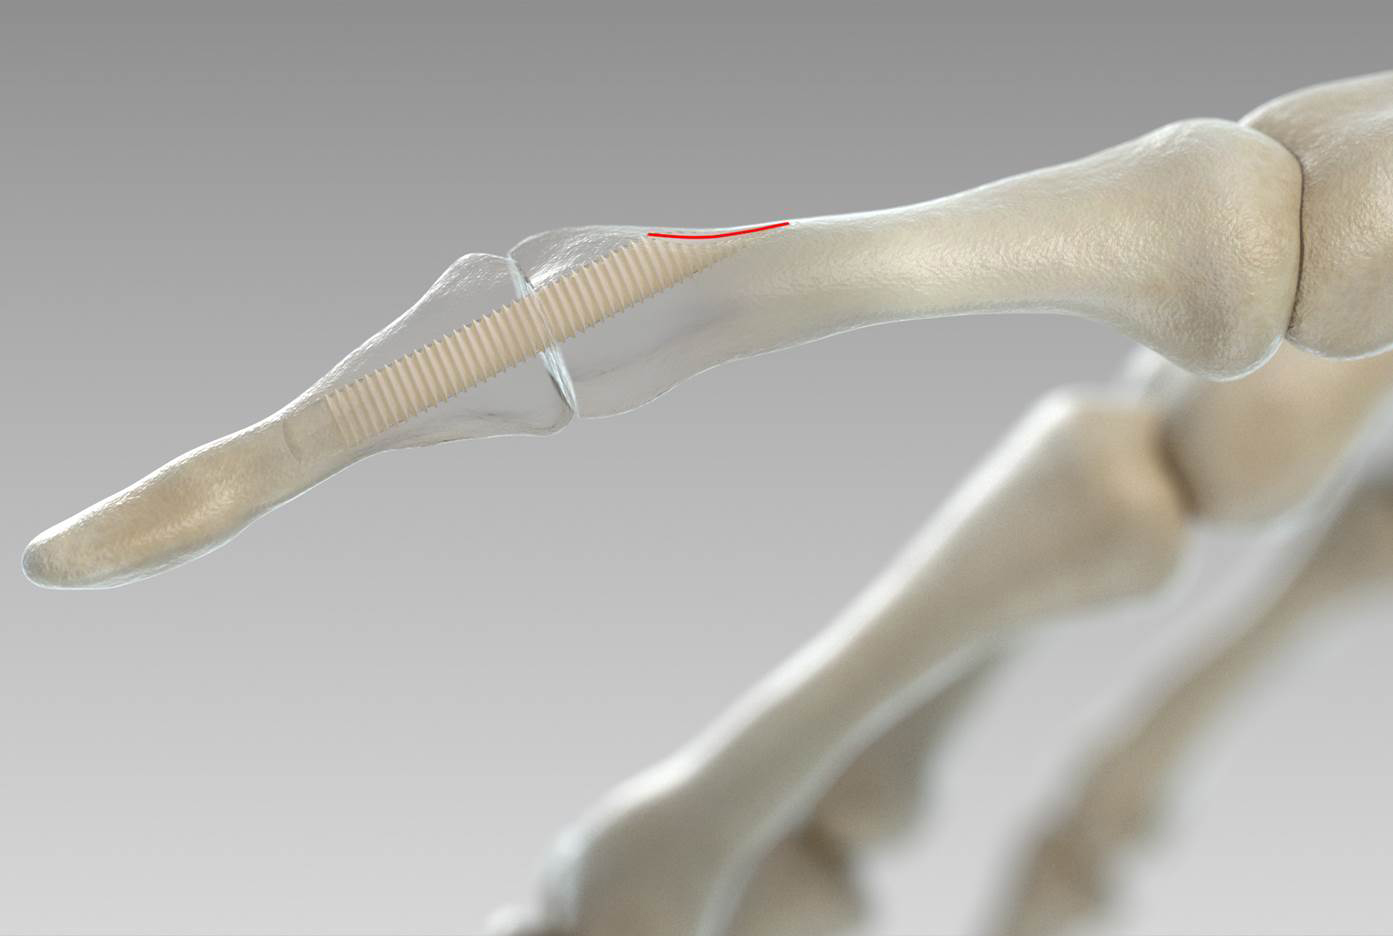 Making Surgical Screws From Bones